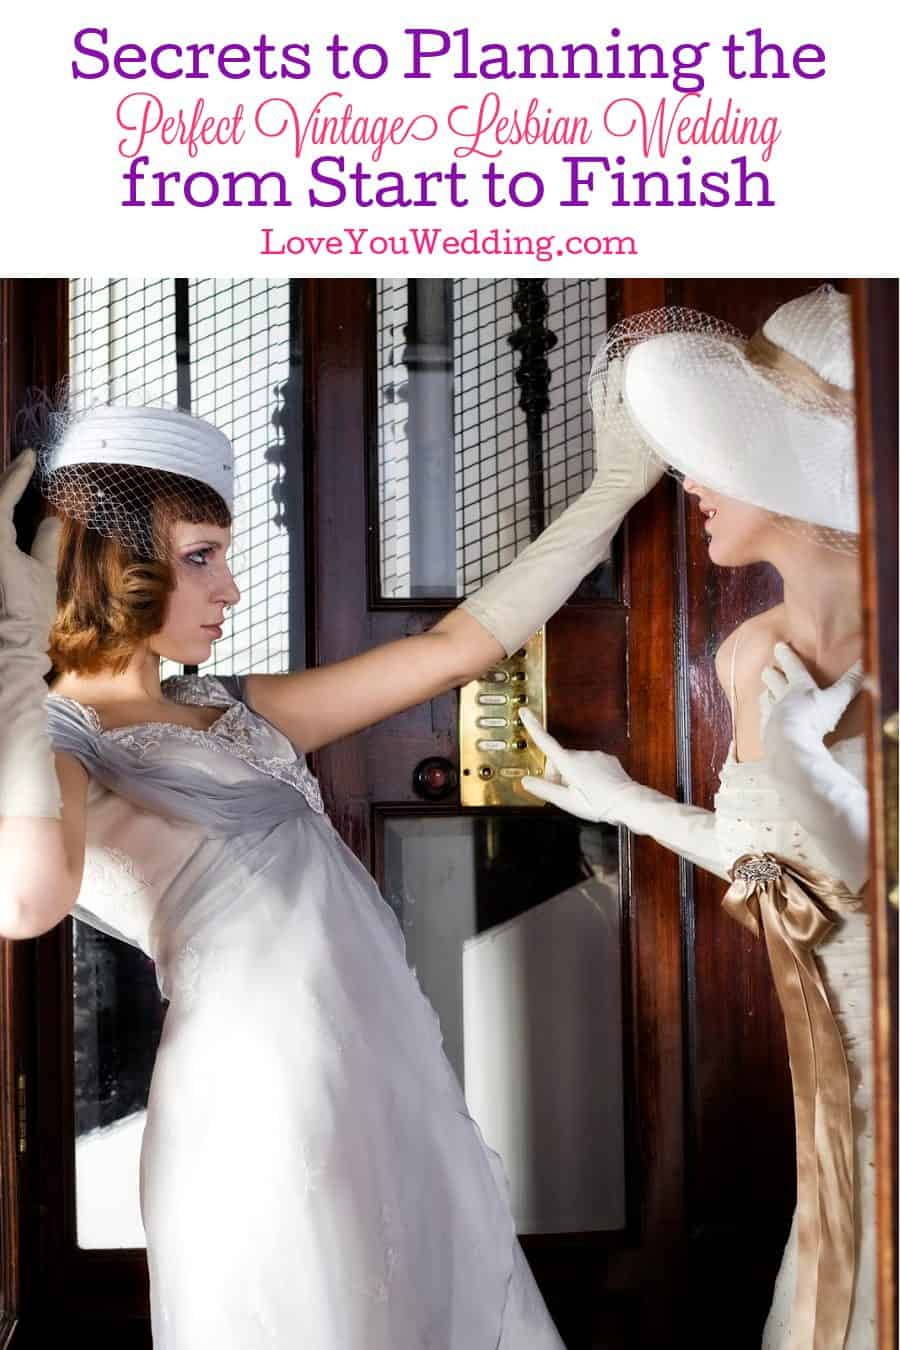 Planning a vintage lesbian wedding? Don't miss our guide! We have some amazing secrets and tips for everything from start to finish!